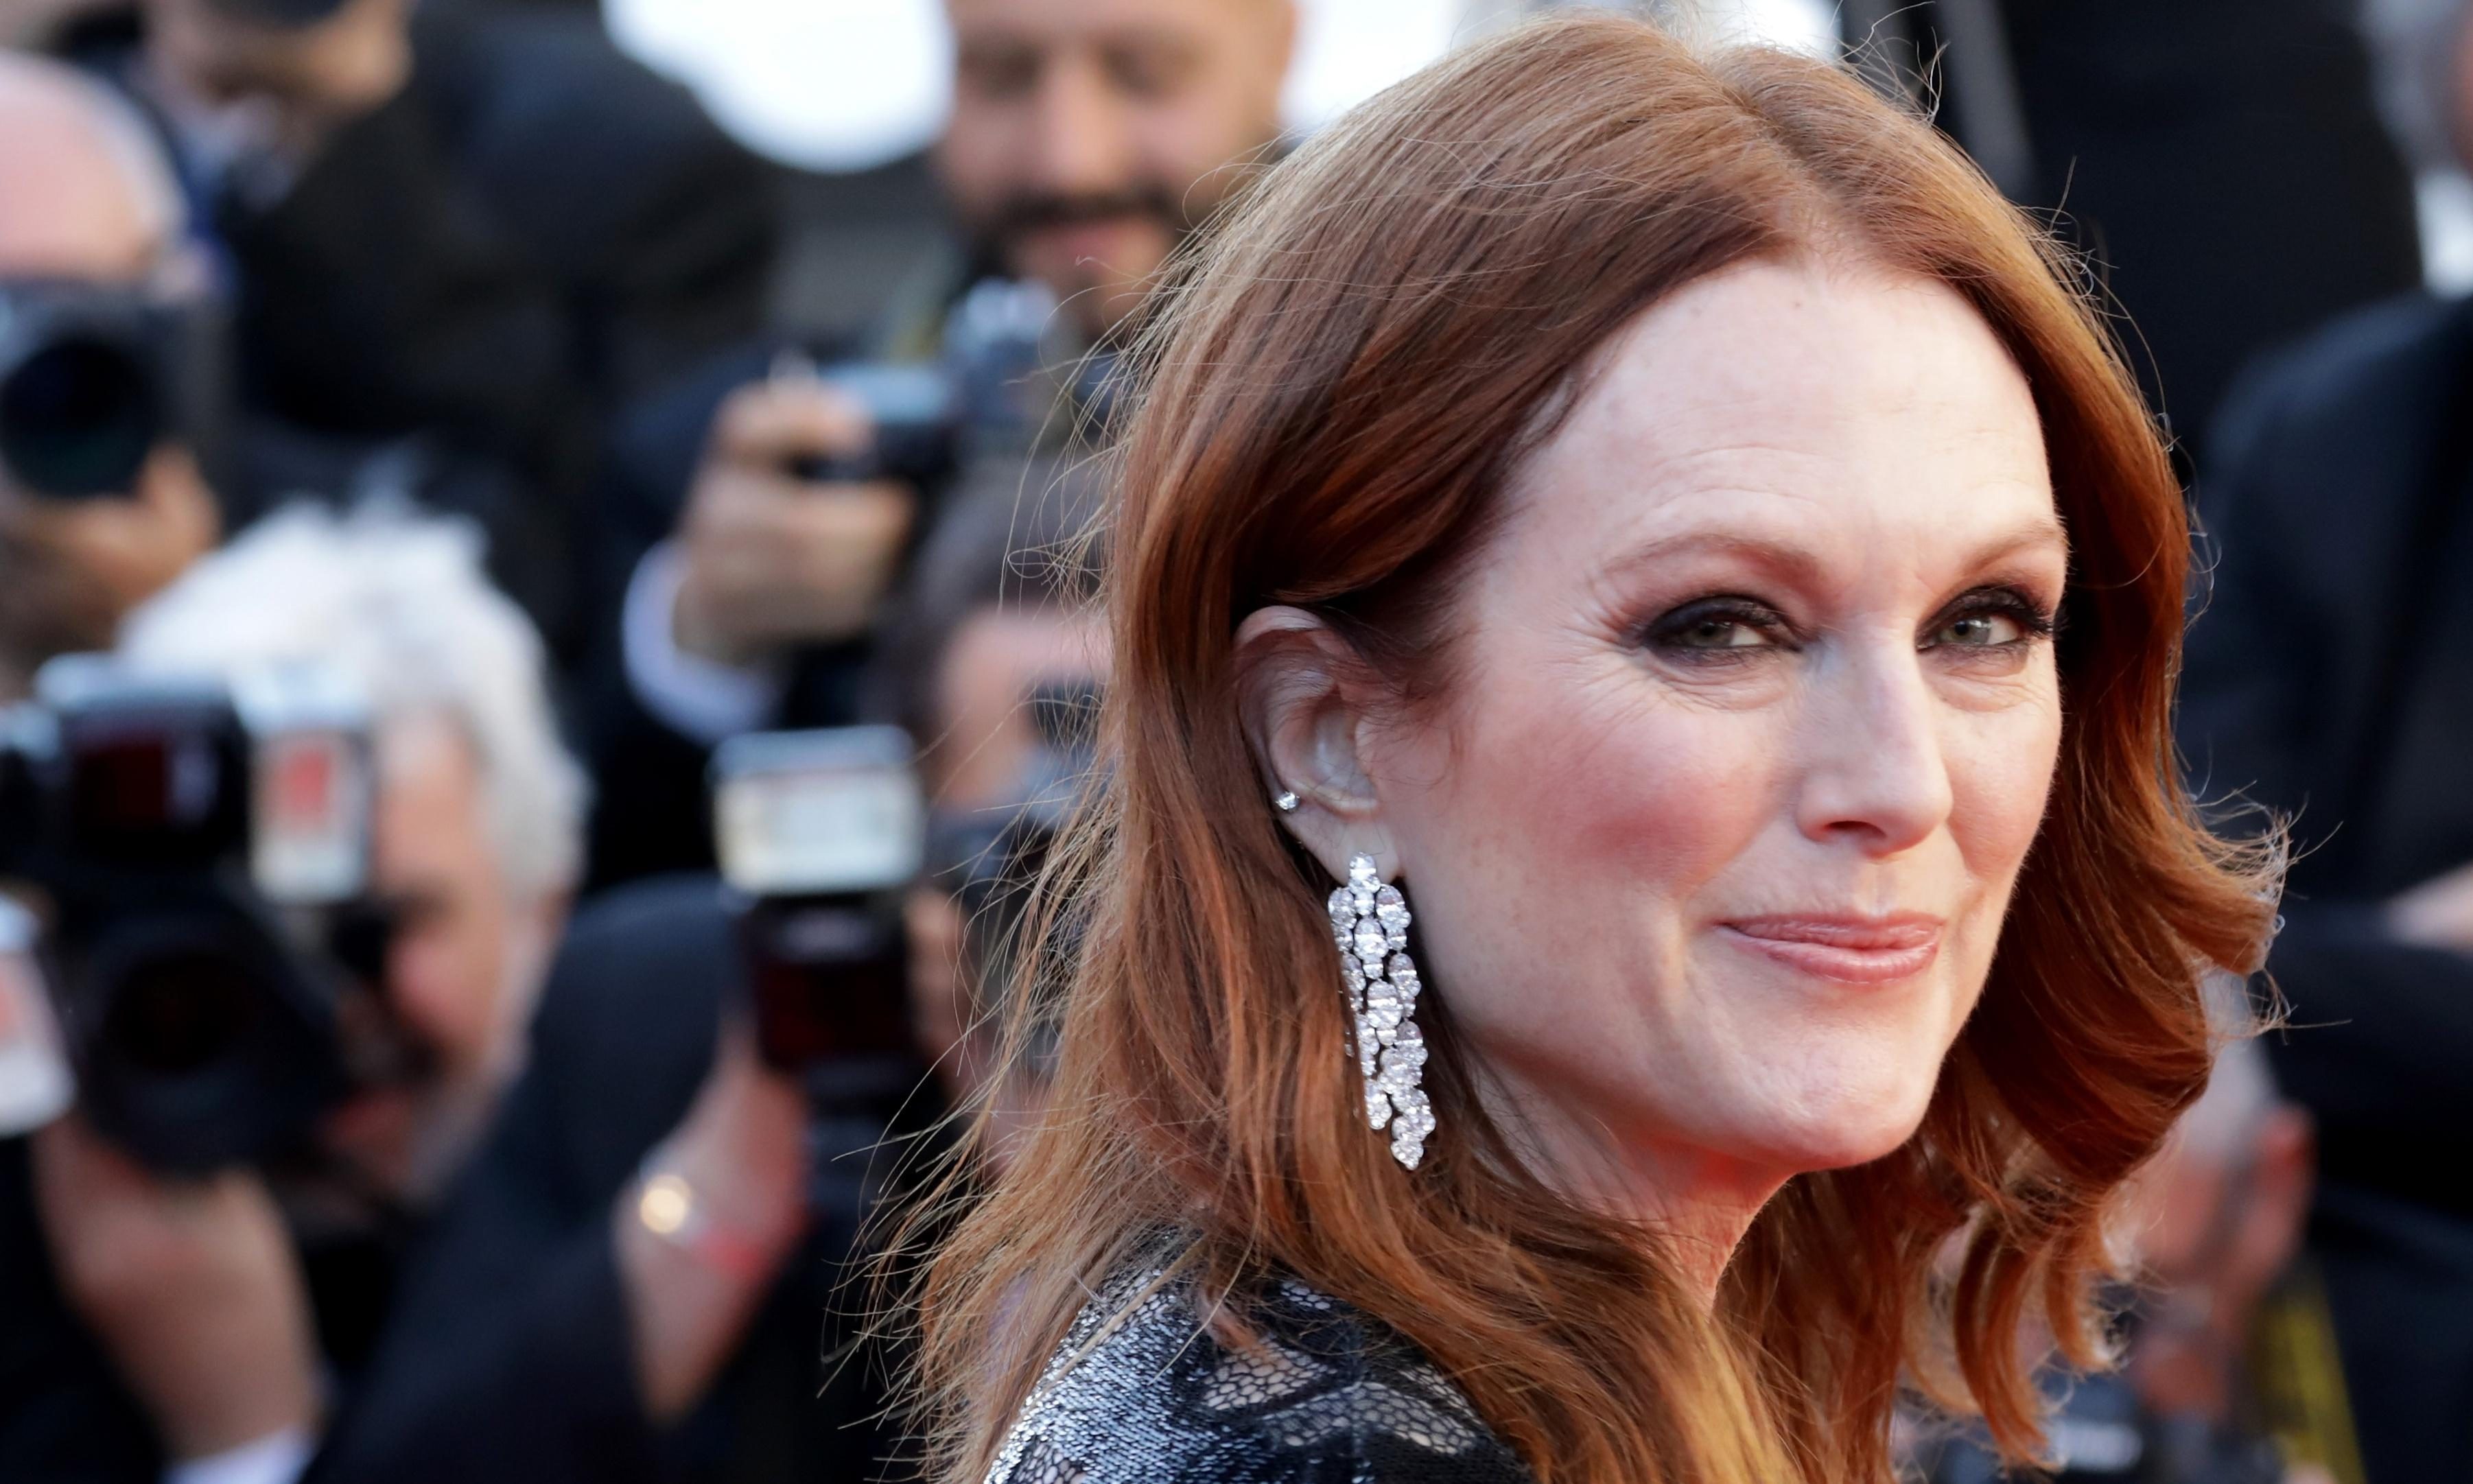 Julianne Moore was fired from Can You Ever Forgive Me? over fat suit and fake nose